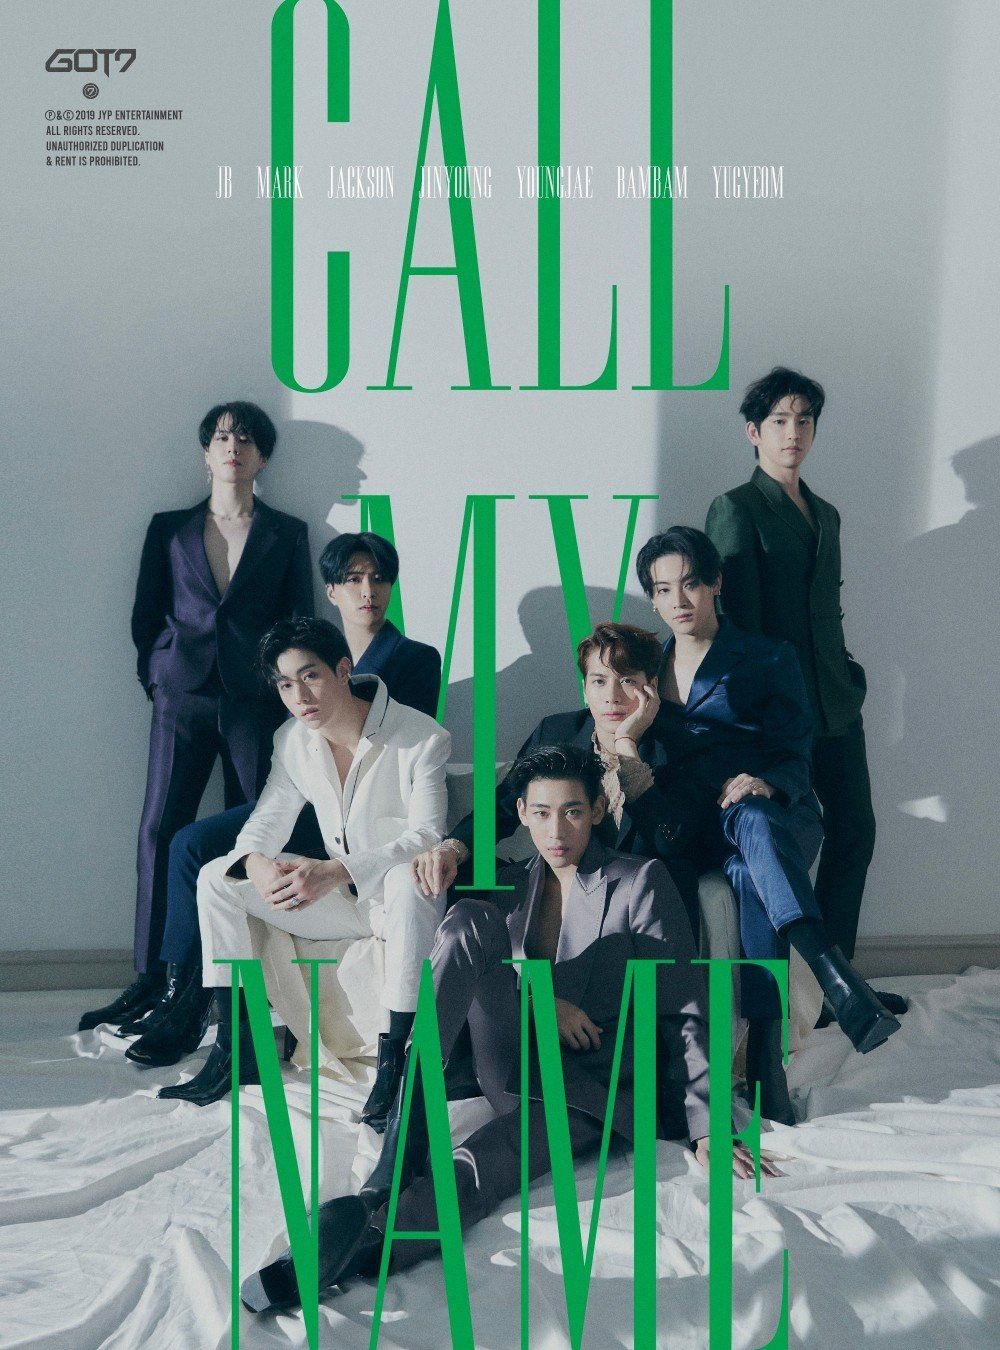 GOT7 - Call My Name (10th Mini Album) - Kpop.ro Shop